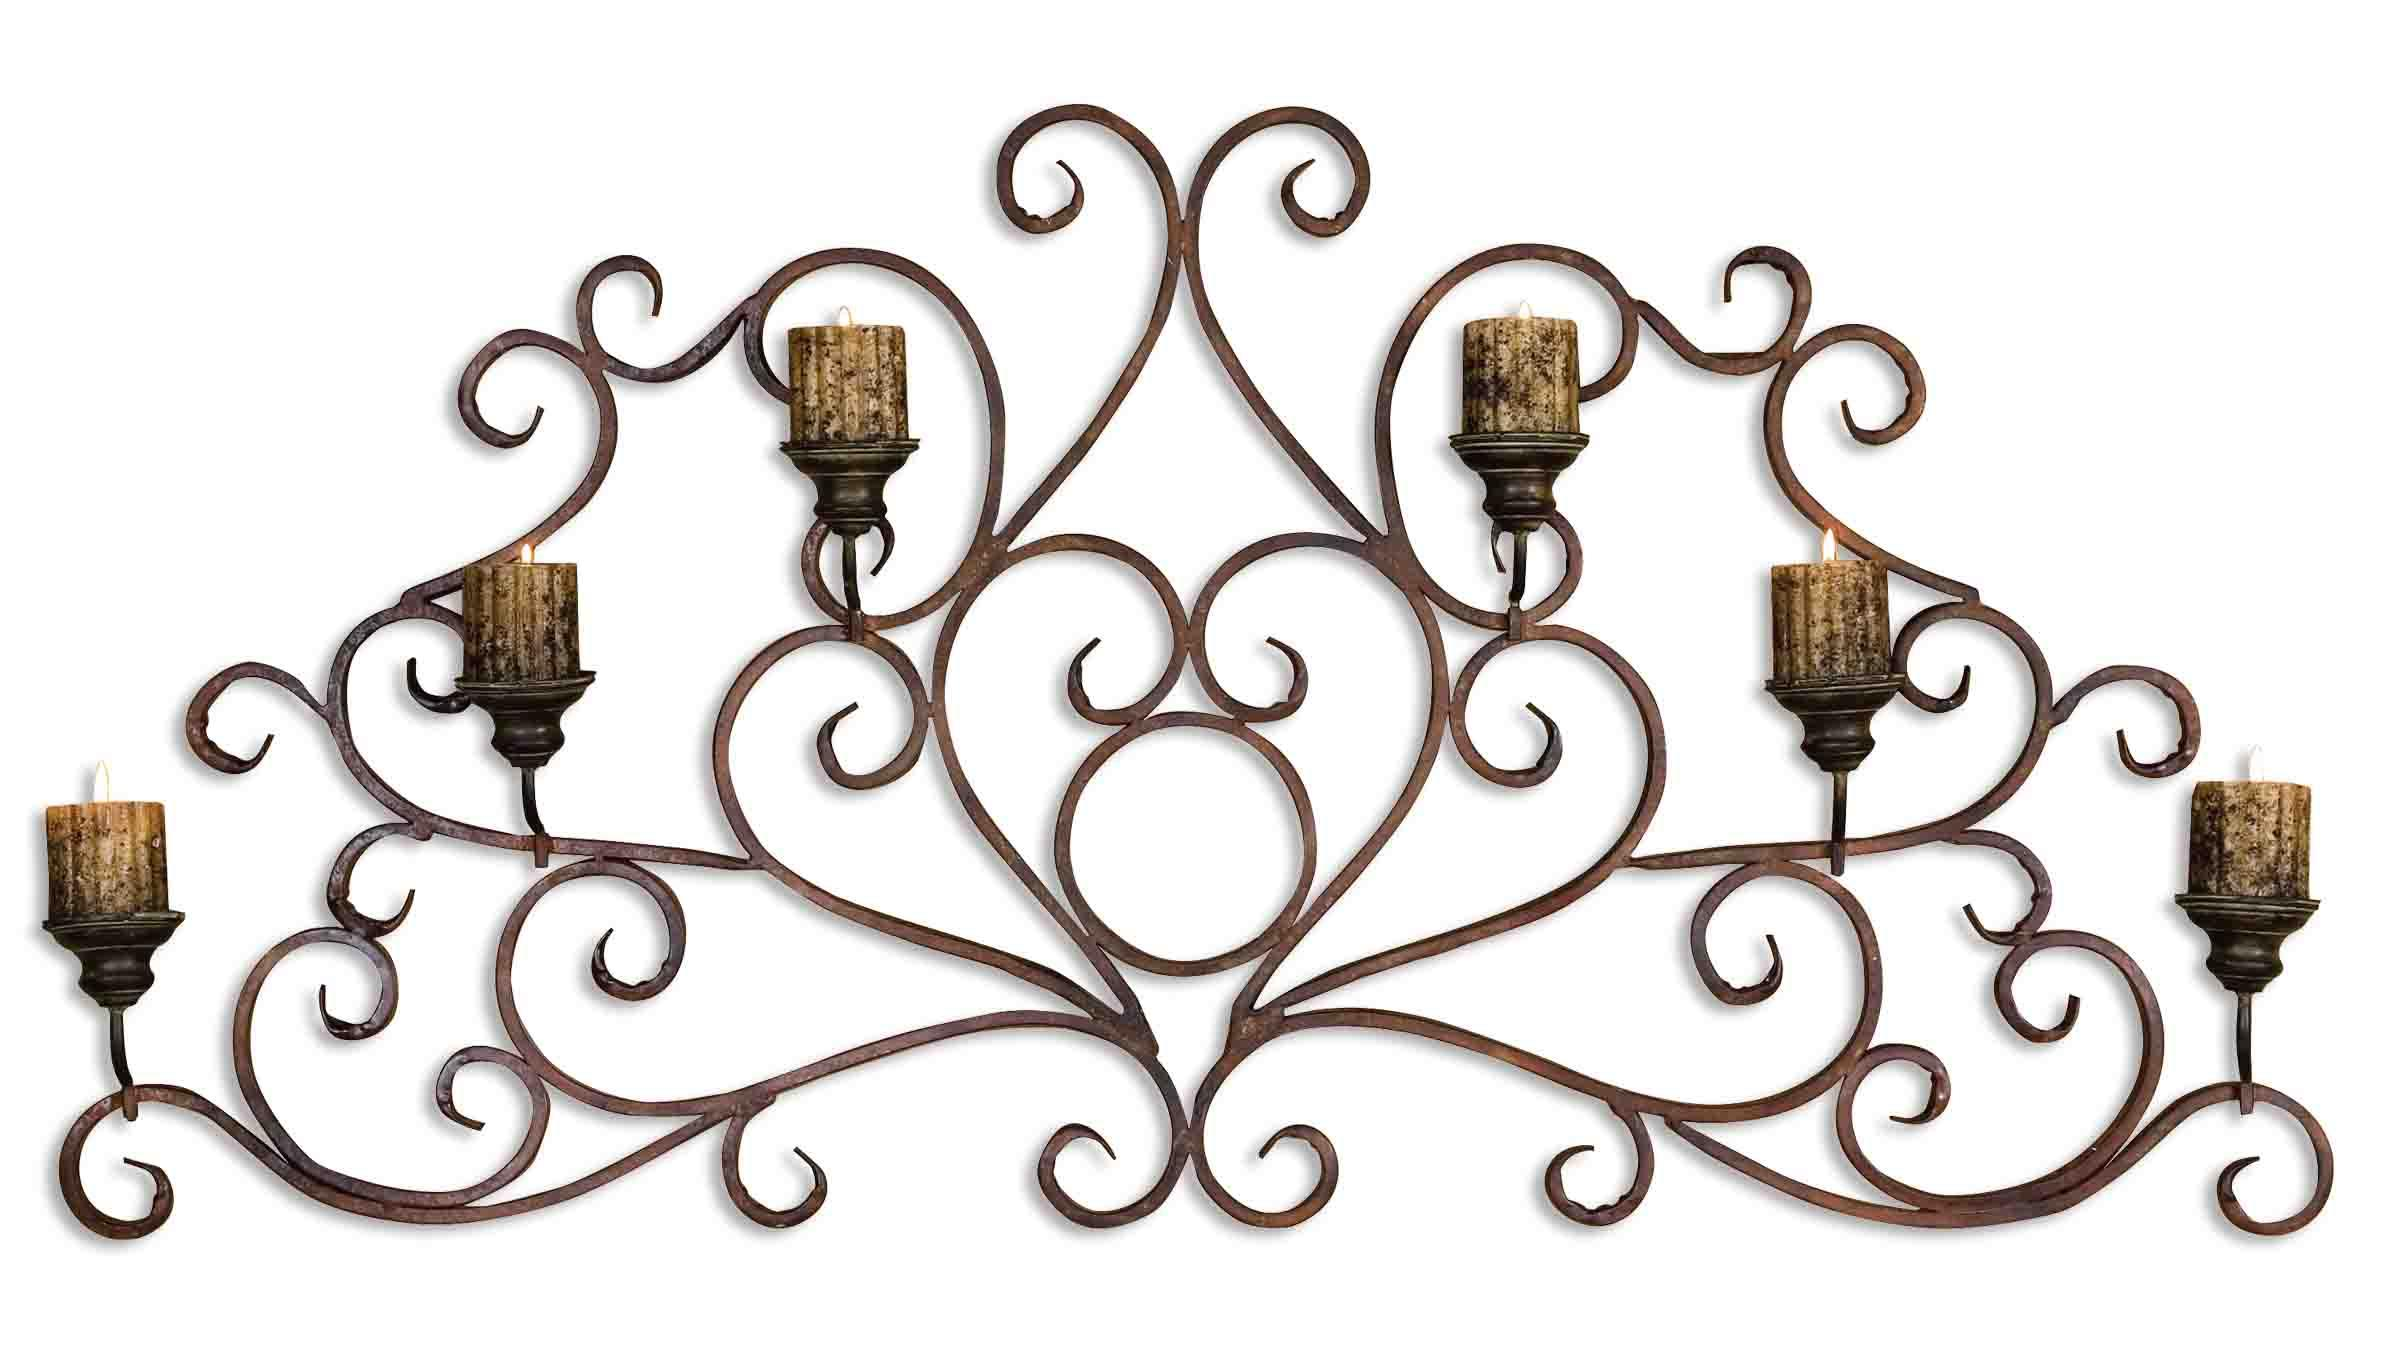 Uttermost Alternative Wall Decor Juliana Wall Sconce - Item Number: 13446